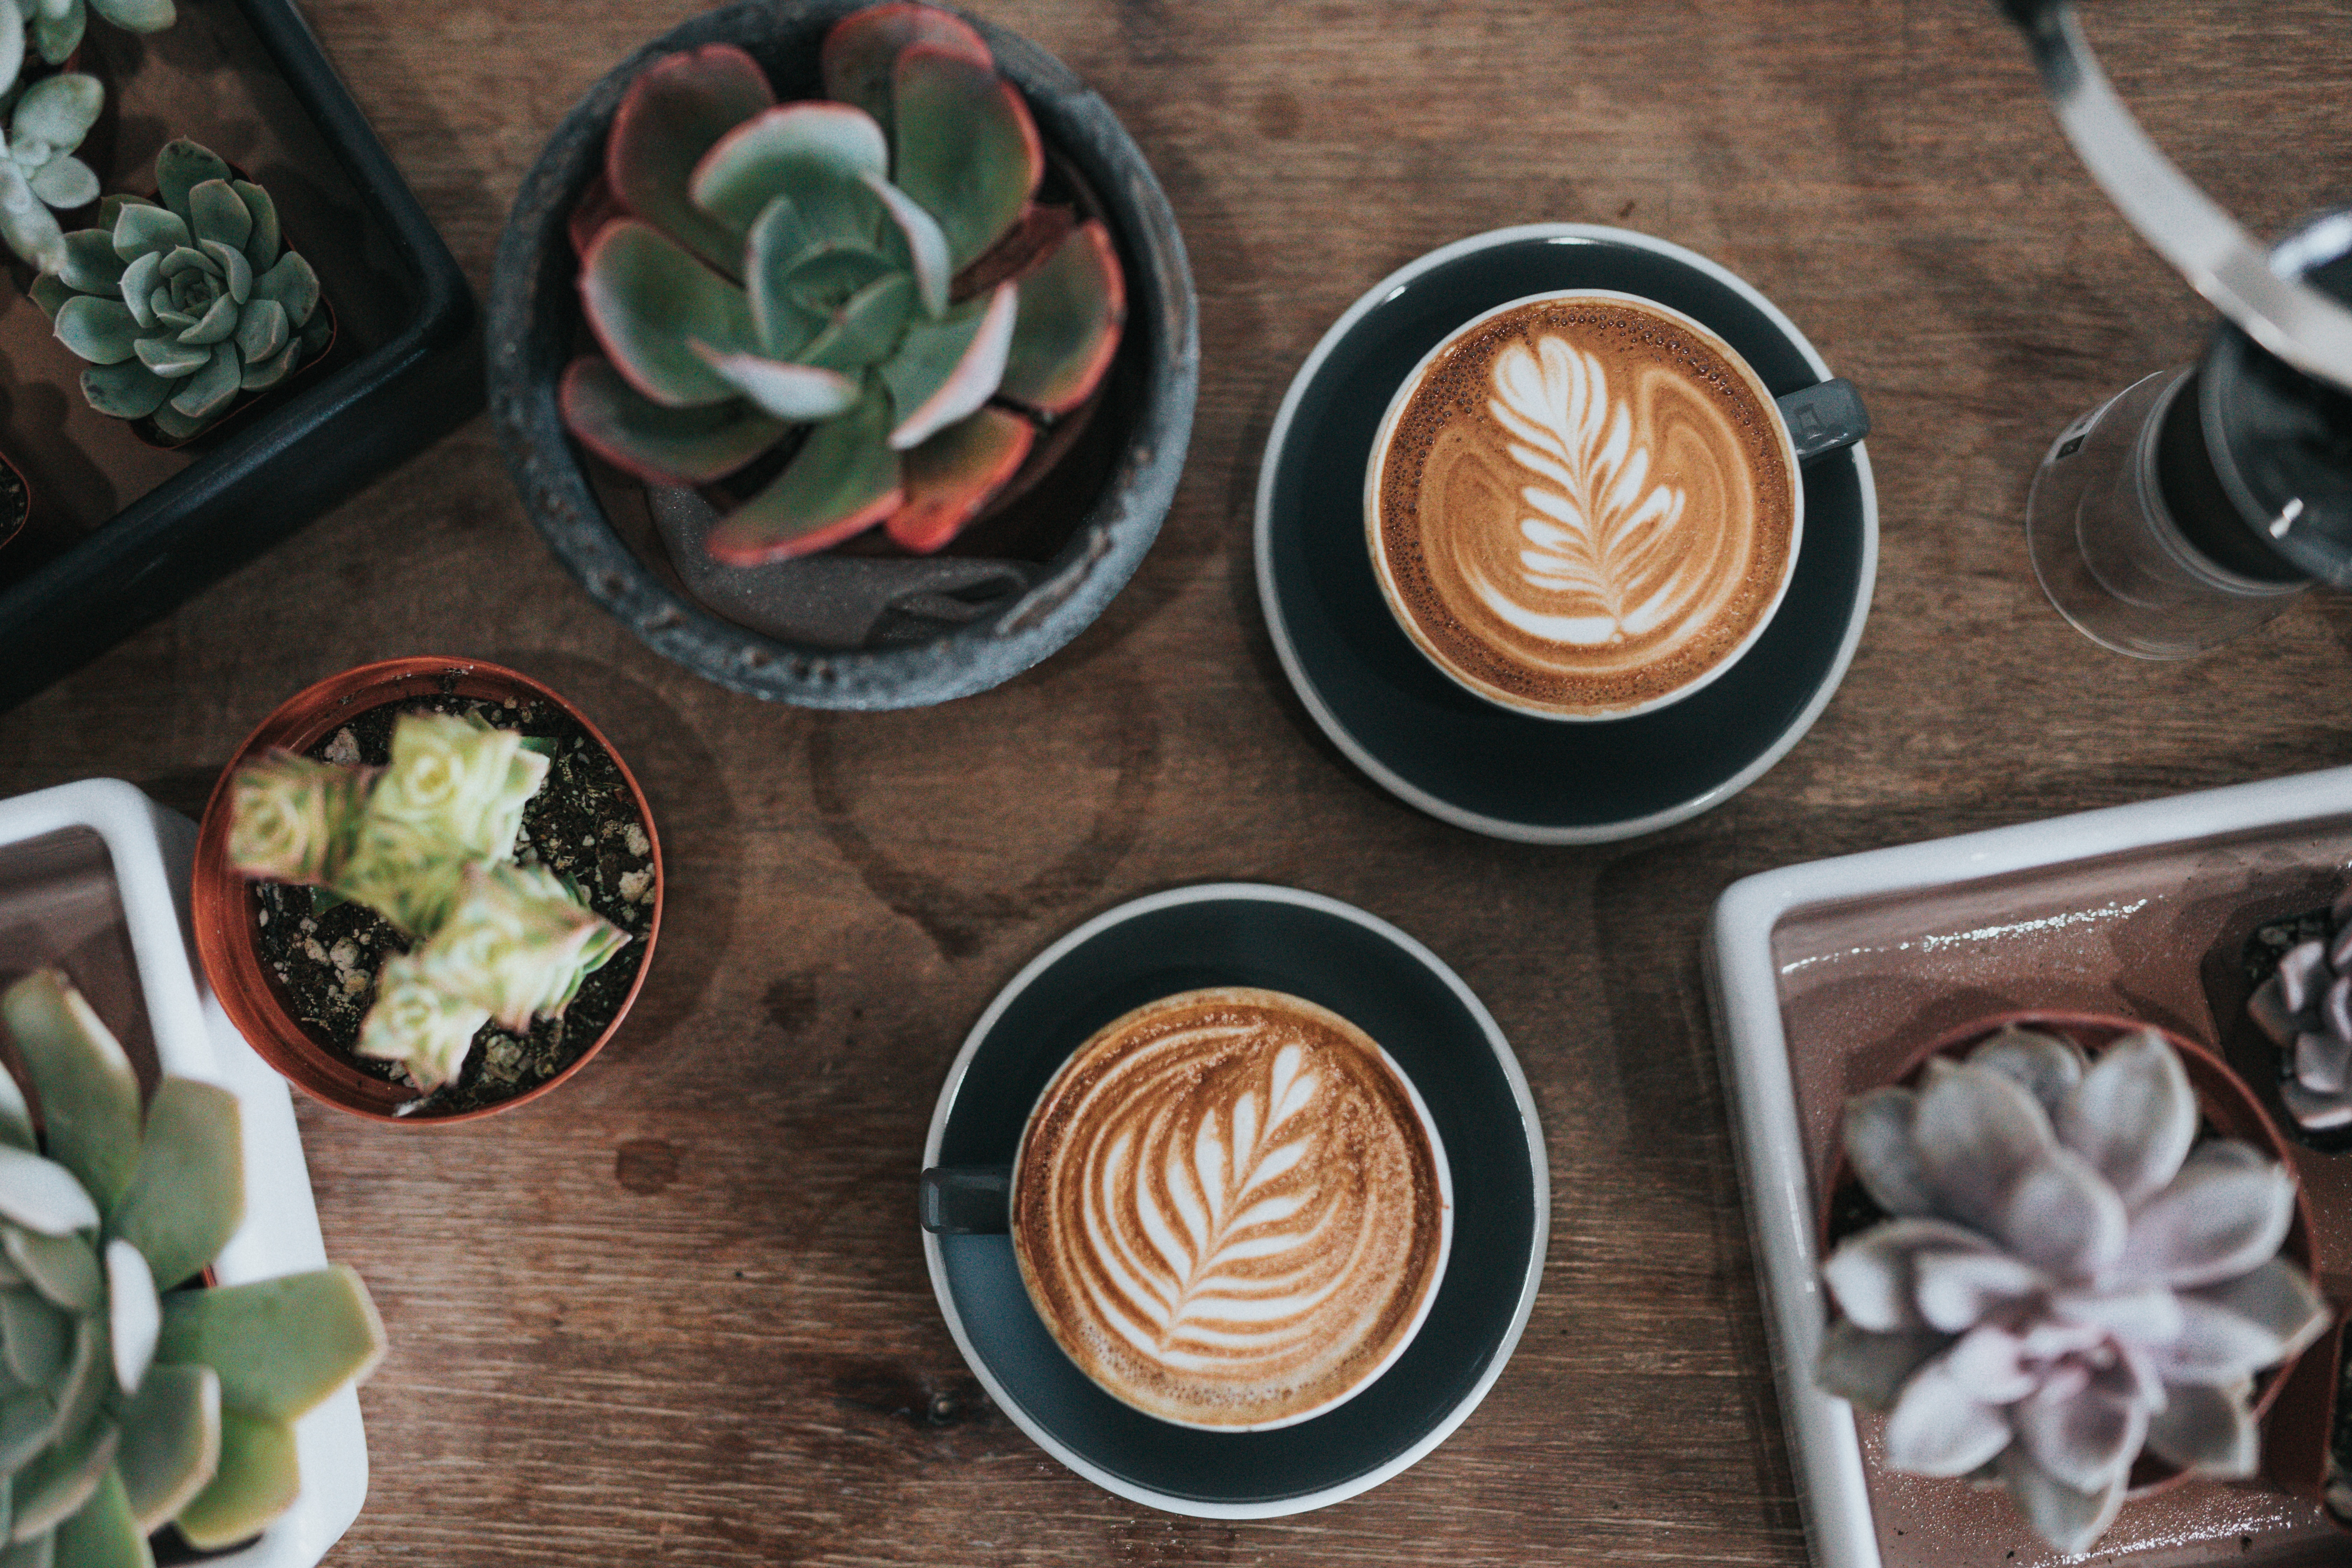 image: coffee and cacti on wooden table